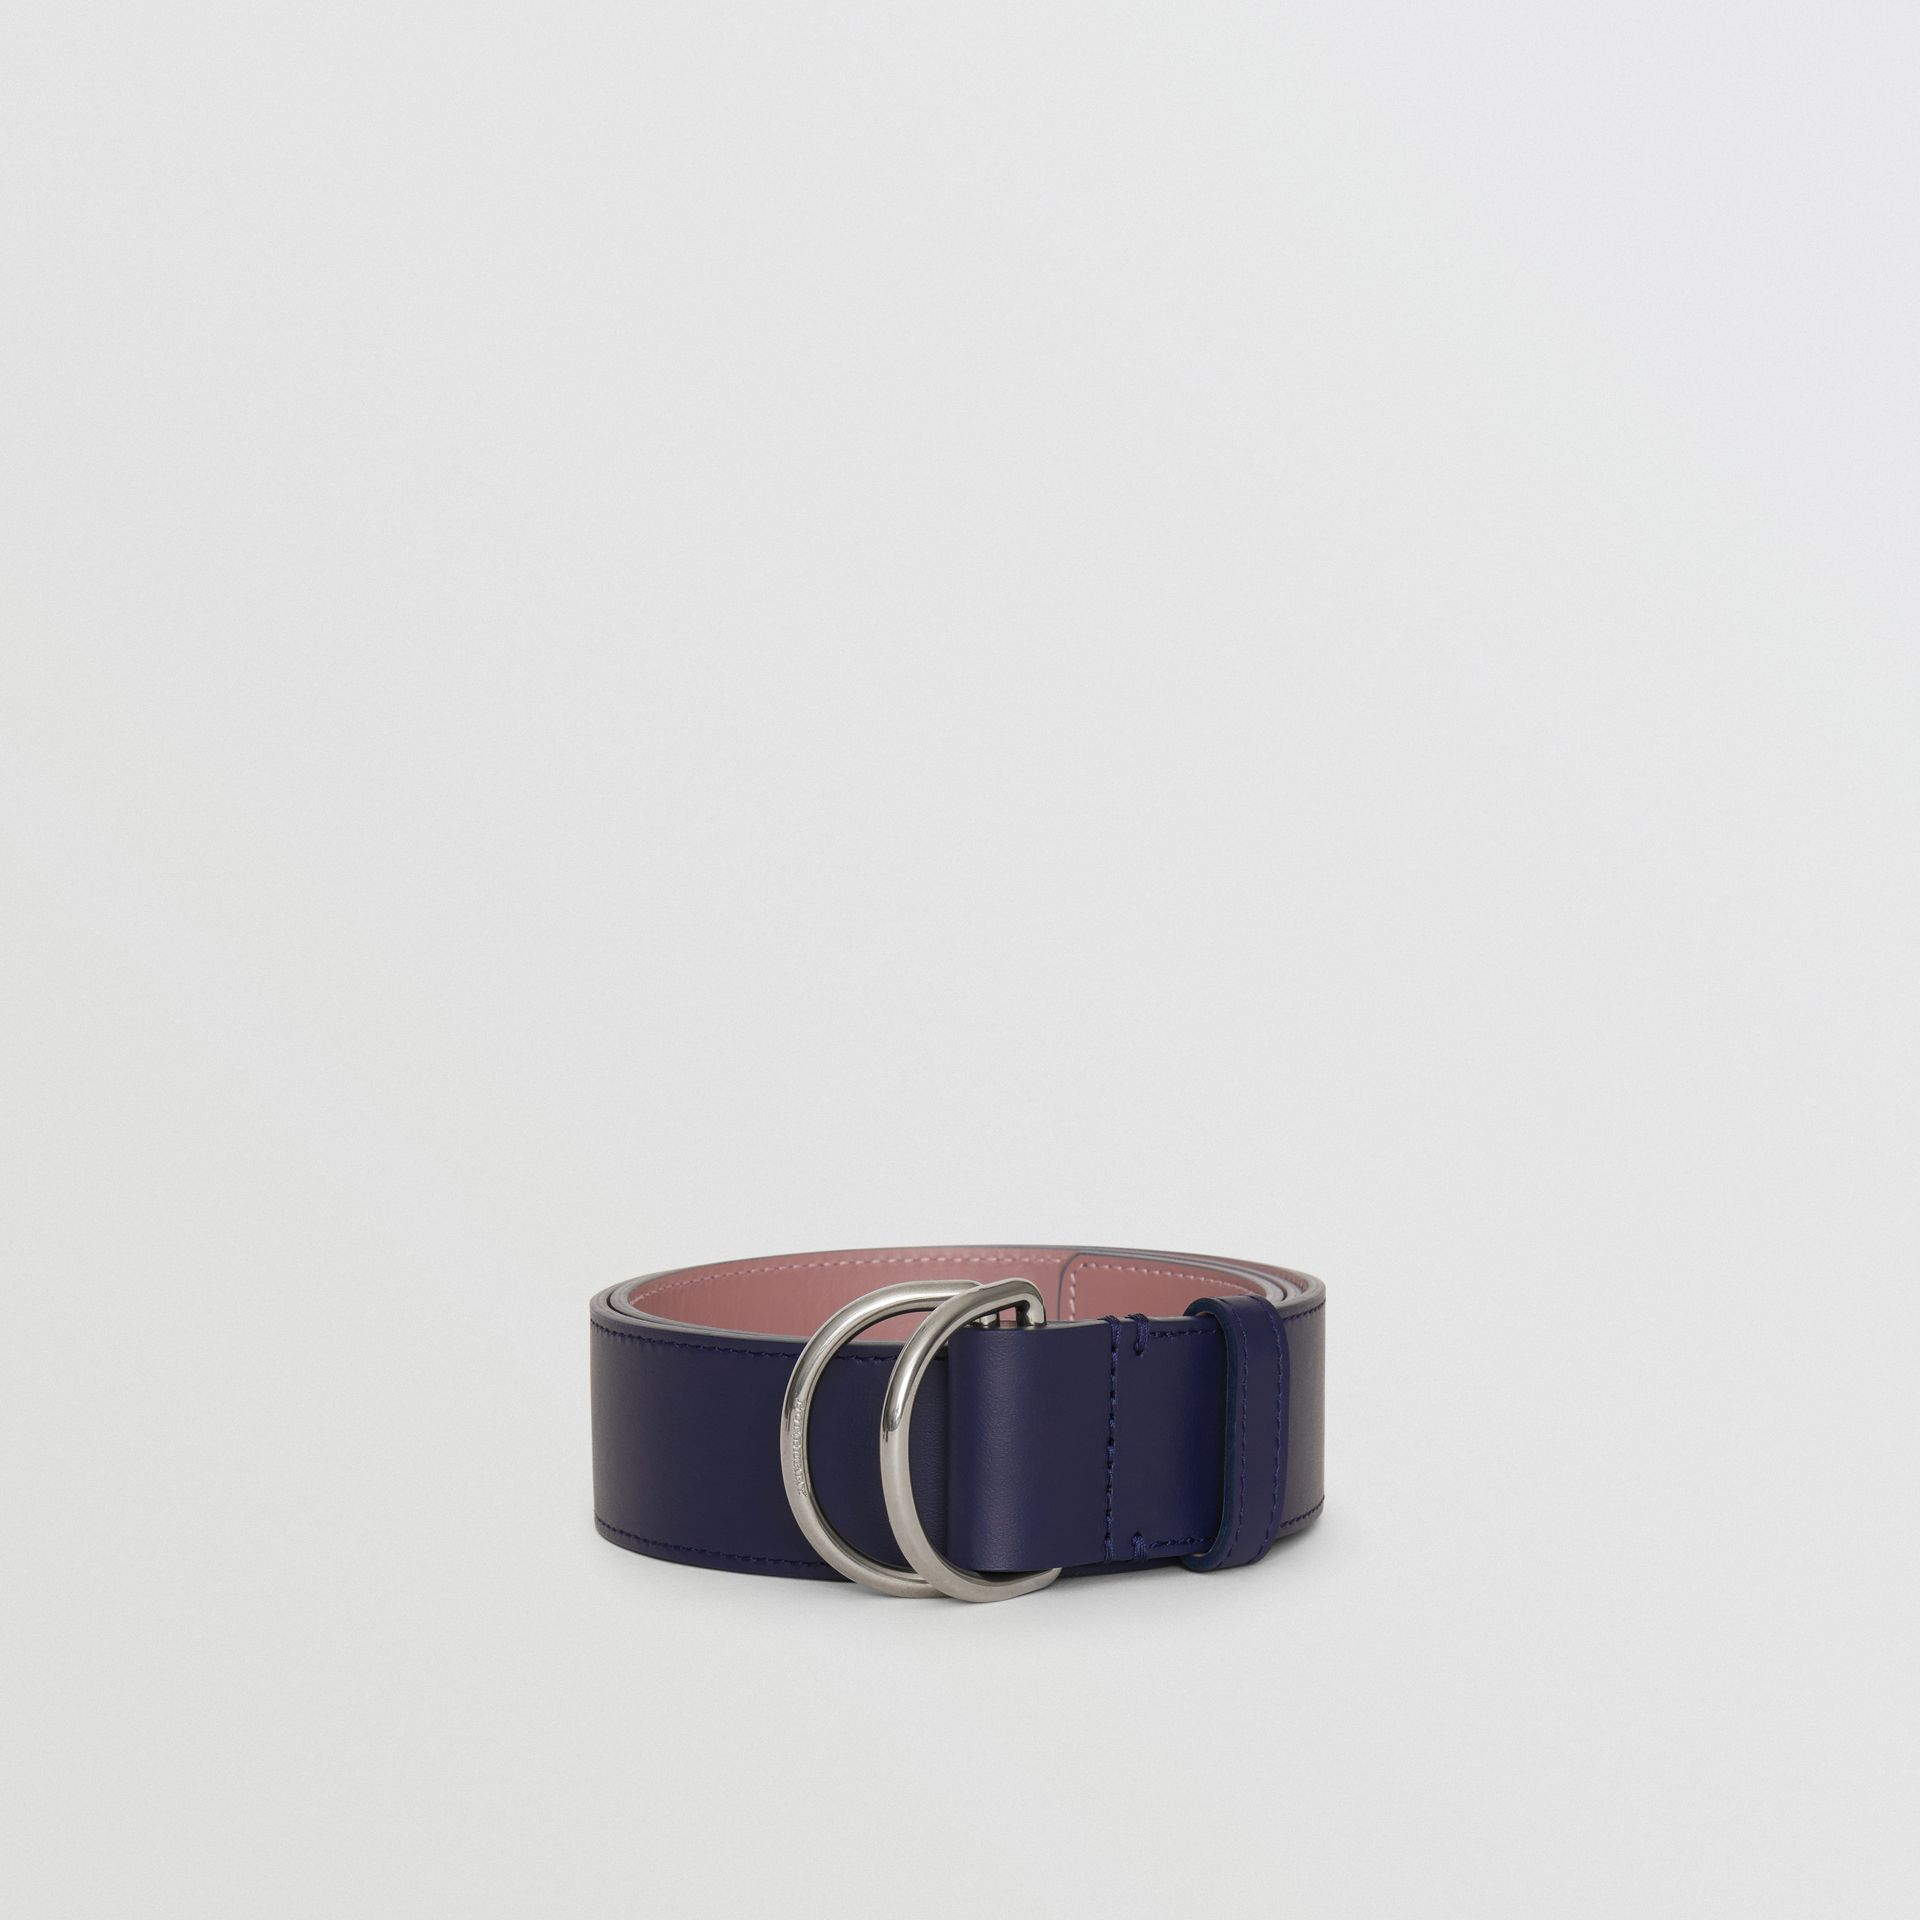 Leather Double D-ring Belt in Regency Blue/mauve - Women | Burberry - gallery image 2